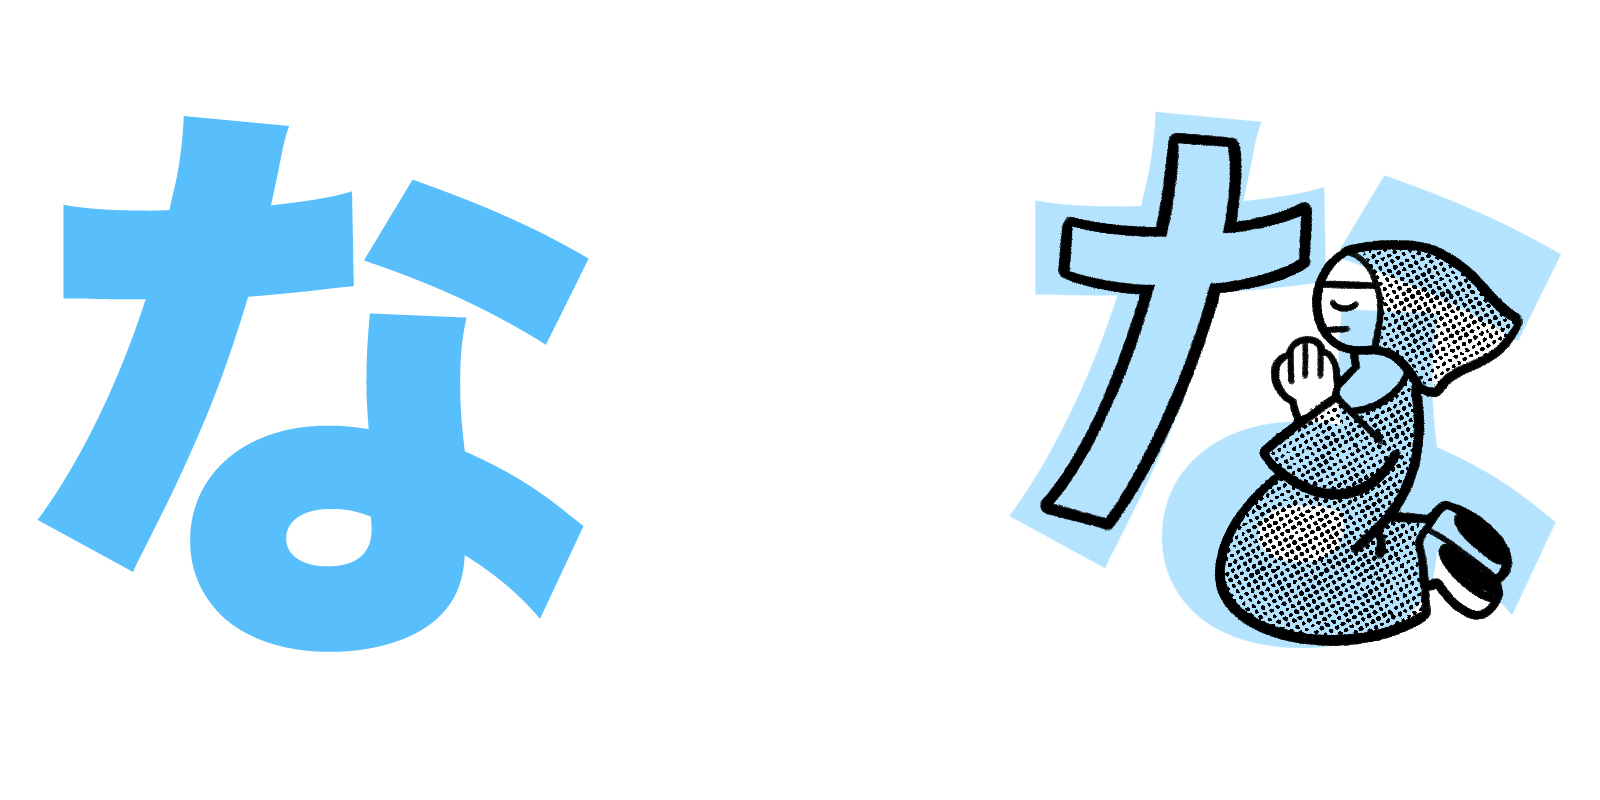 how to write no hiragana in japanese